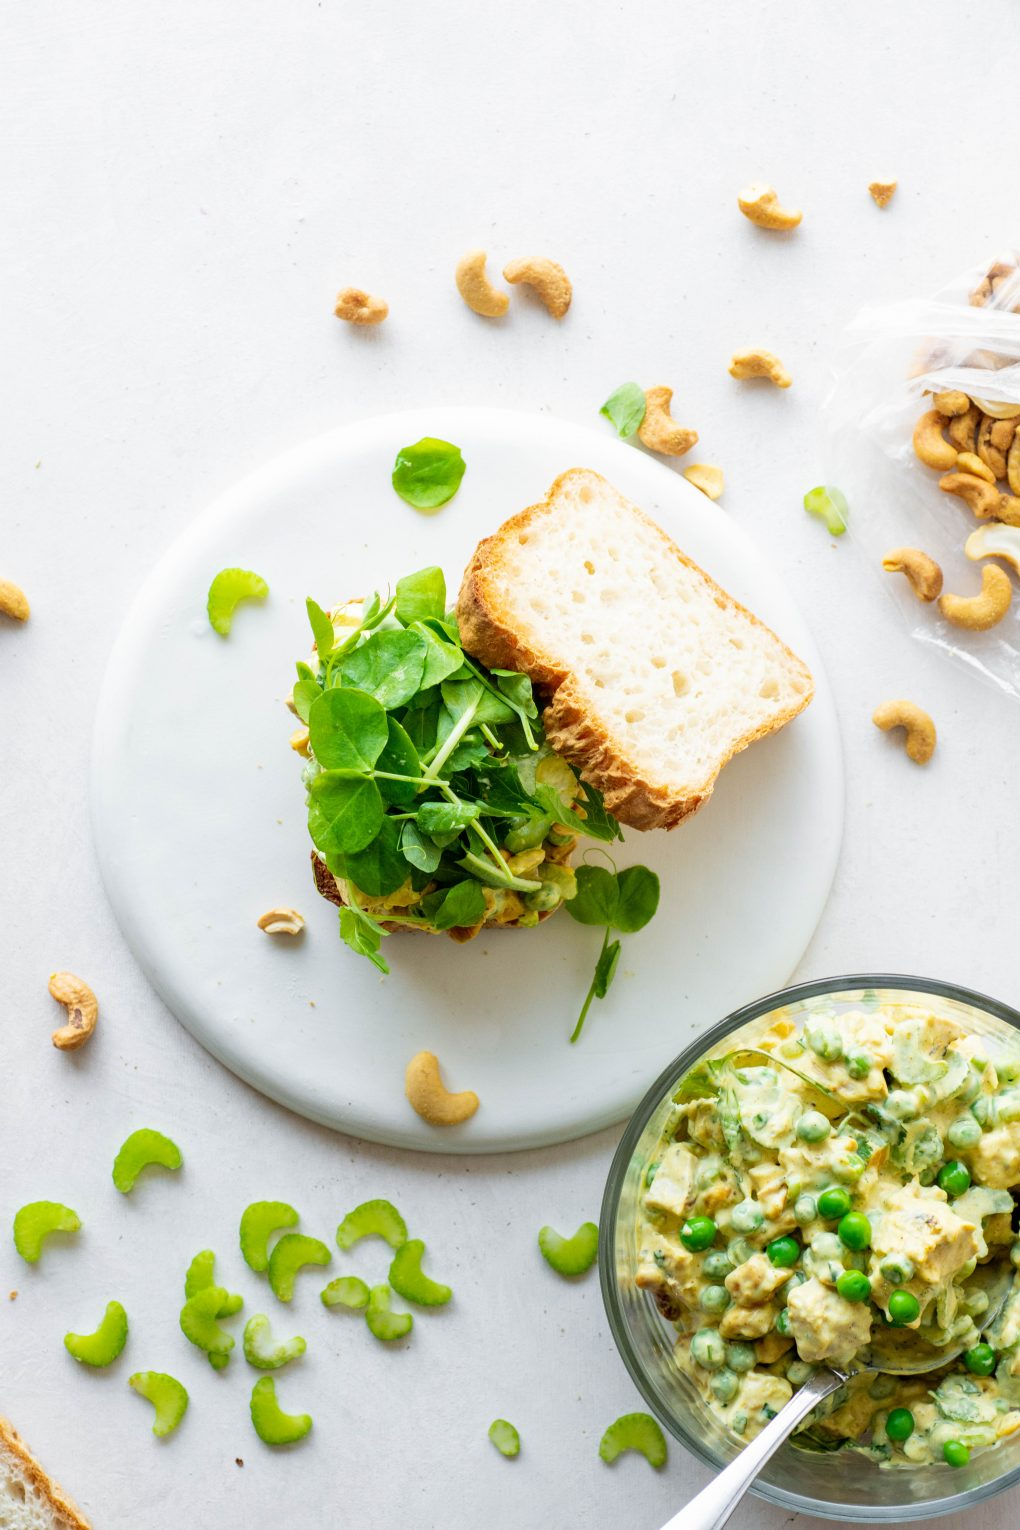 Overhead shot of an open faced chicken curry salad sandwich topped with salad greens on a white background. Surrounded by a bowl of chicken salad, some toasted cashews, and sliced celery.